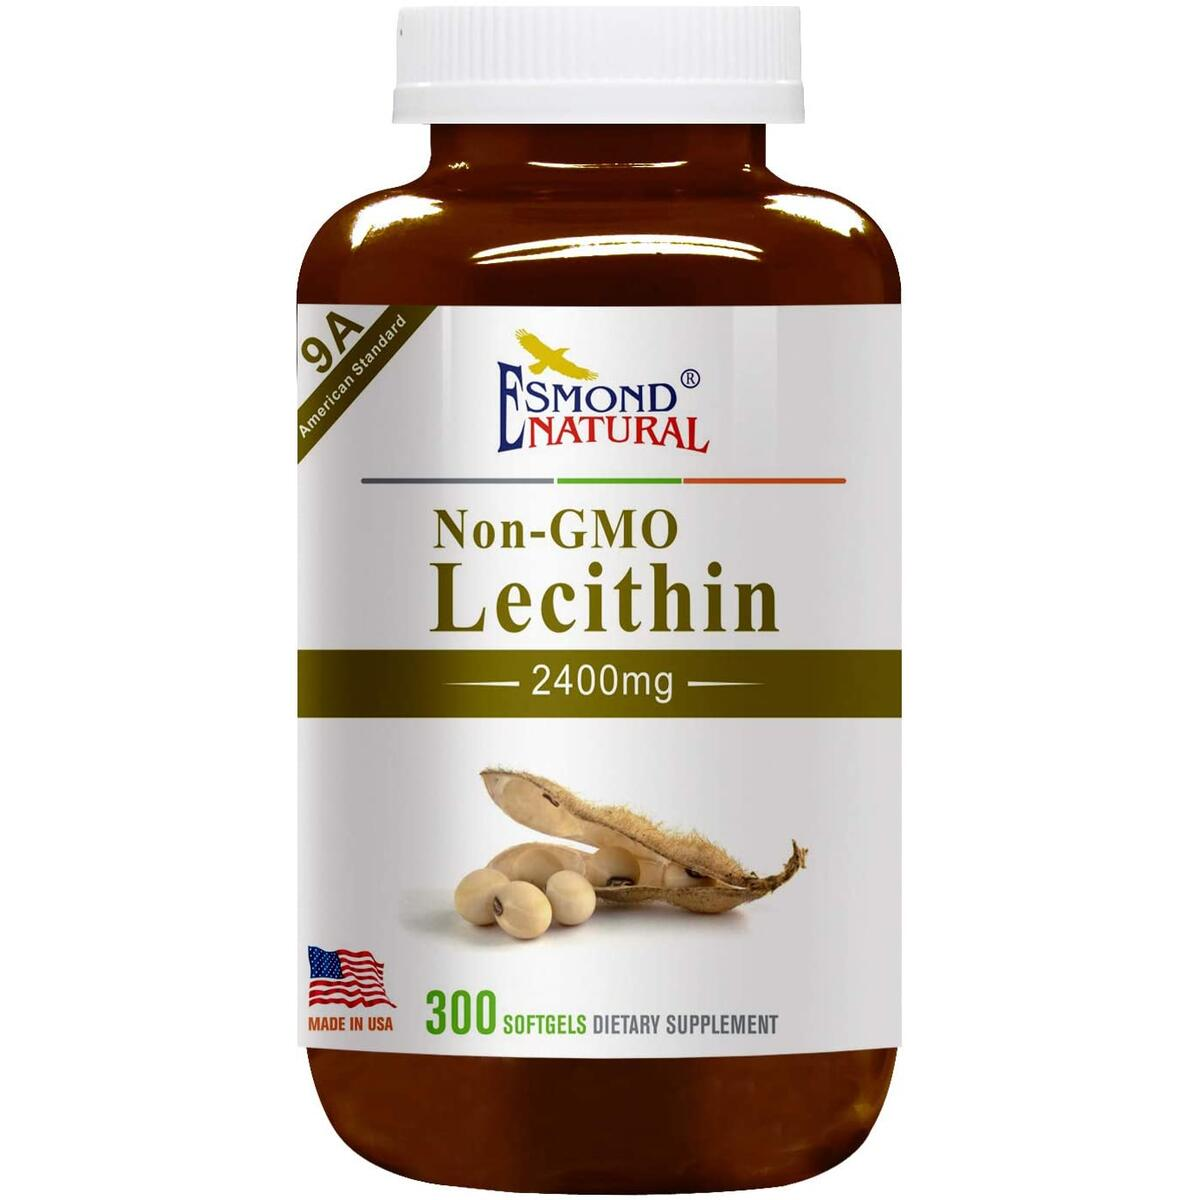 (3 Count, 10% Off) Esmond Natural: Lecithin (Non-GMO), GMP, Natural Product Assn Certified, Made in USA-2400mg, 900 Softgels